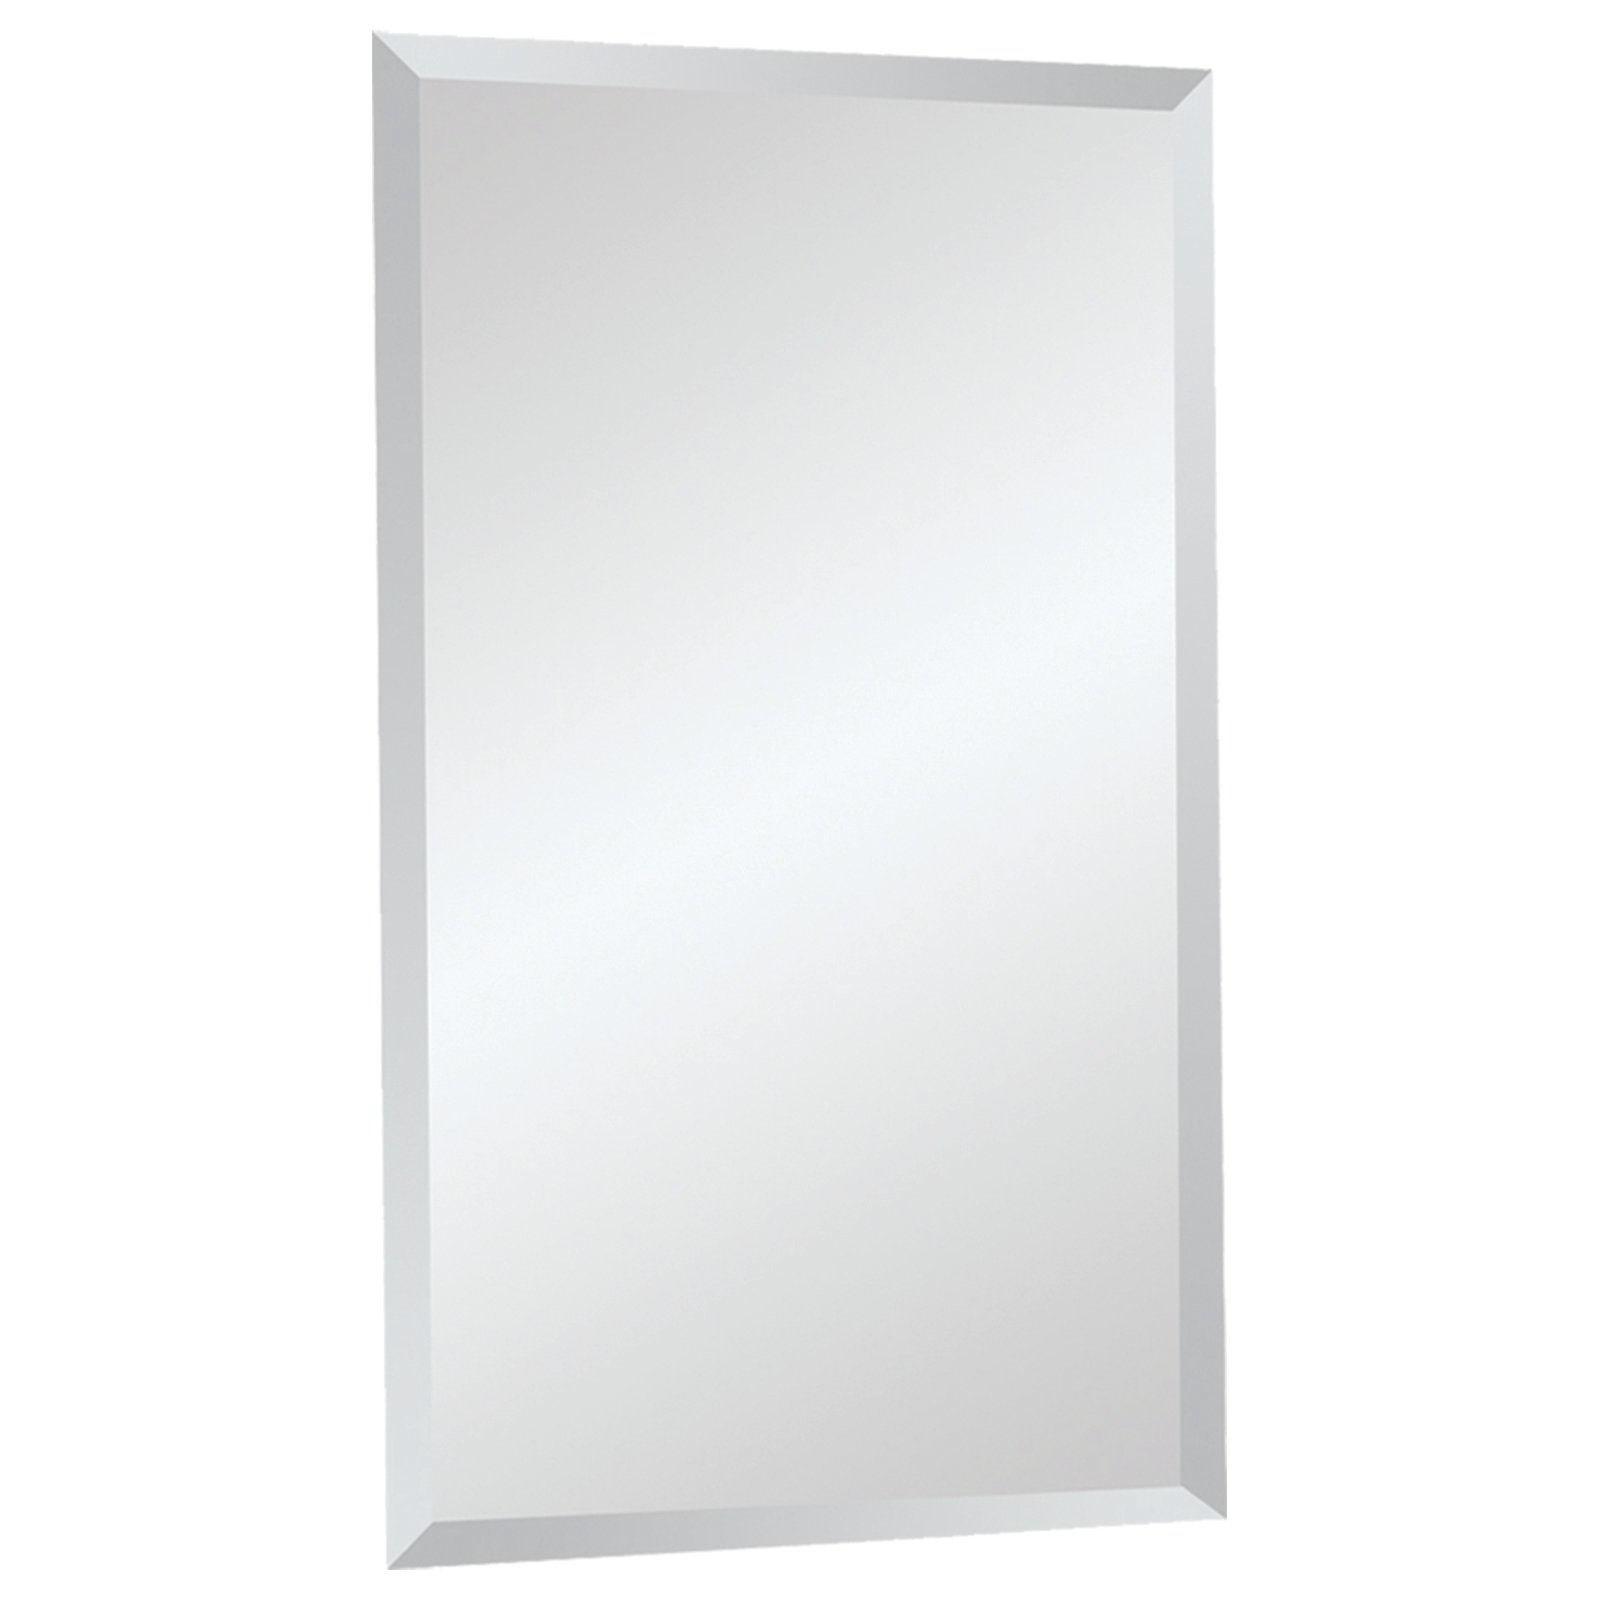 Frameless Mirrors Youll Love Wayfair Pertaining To Wall Mirror Without Frame (View 5 of 15)